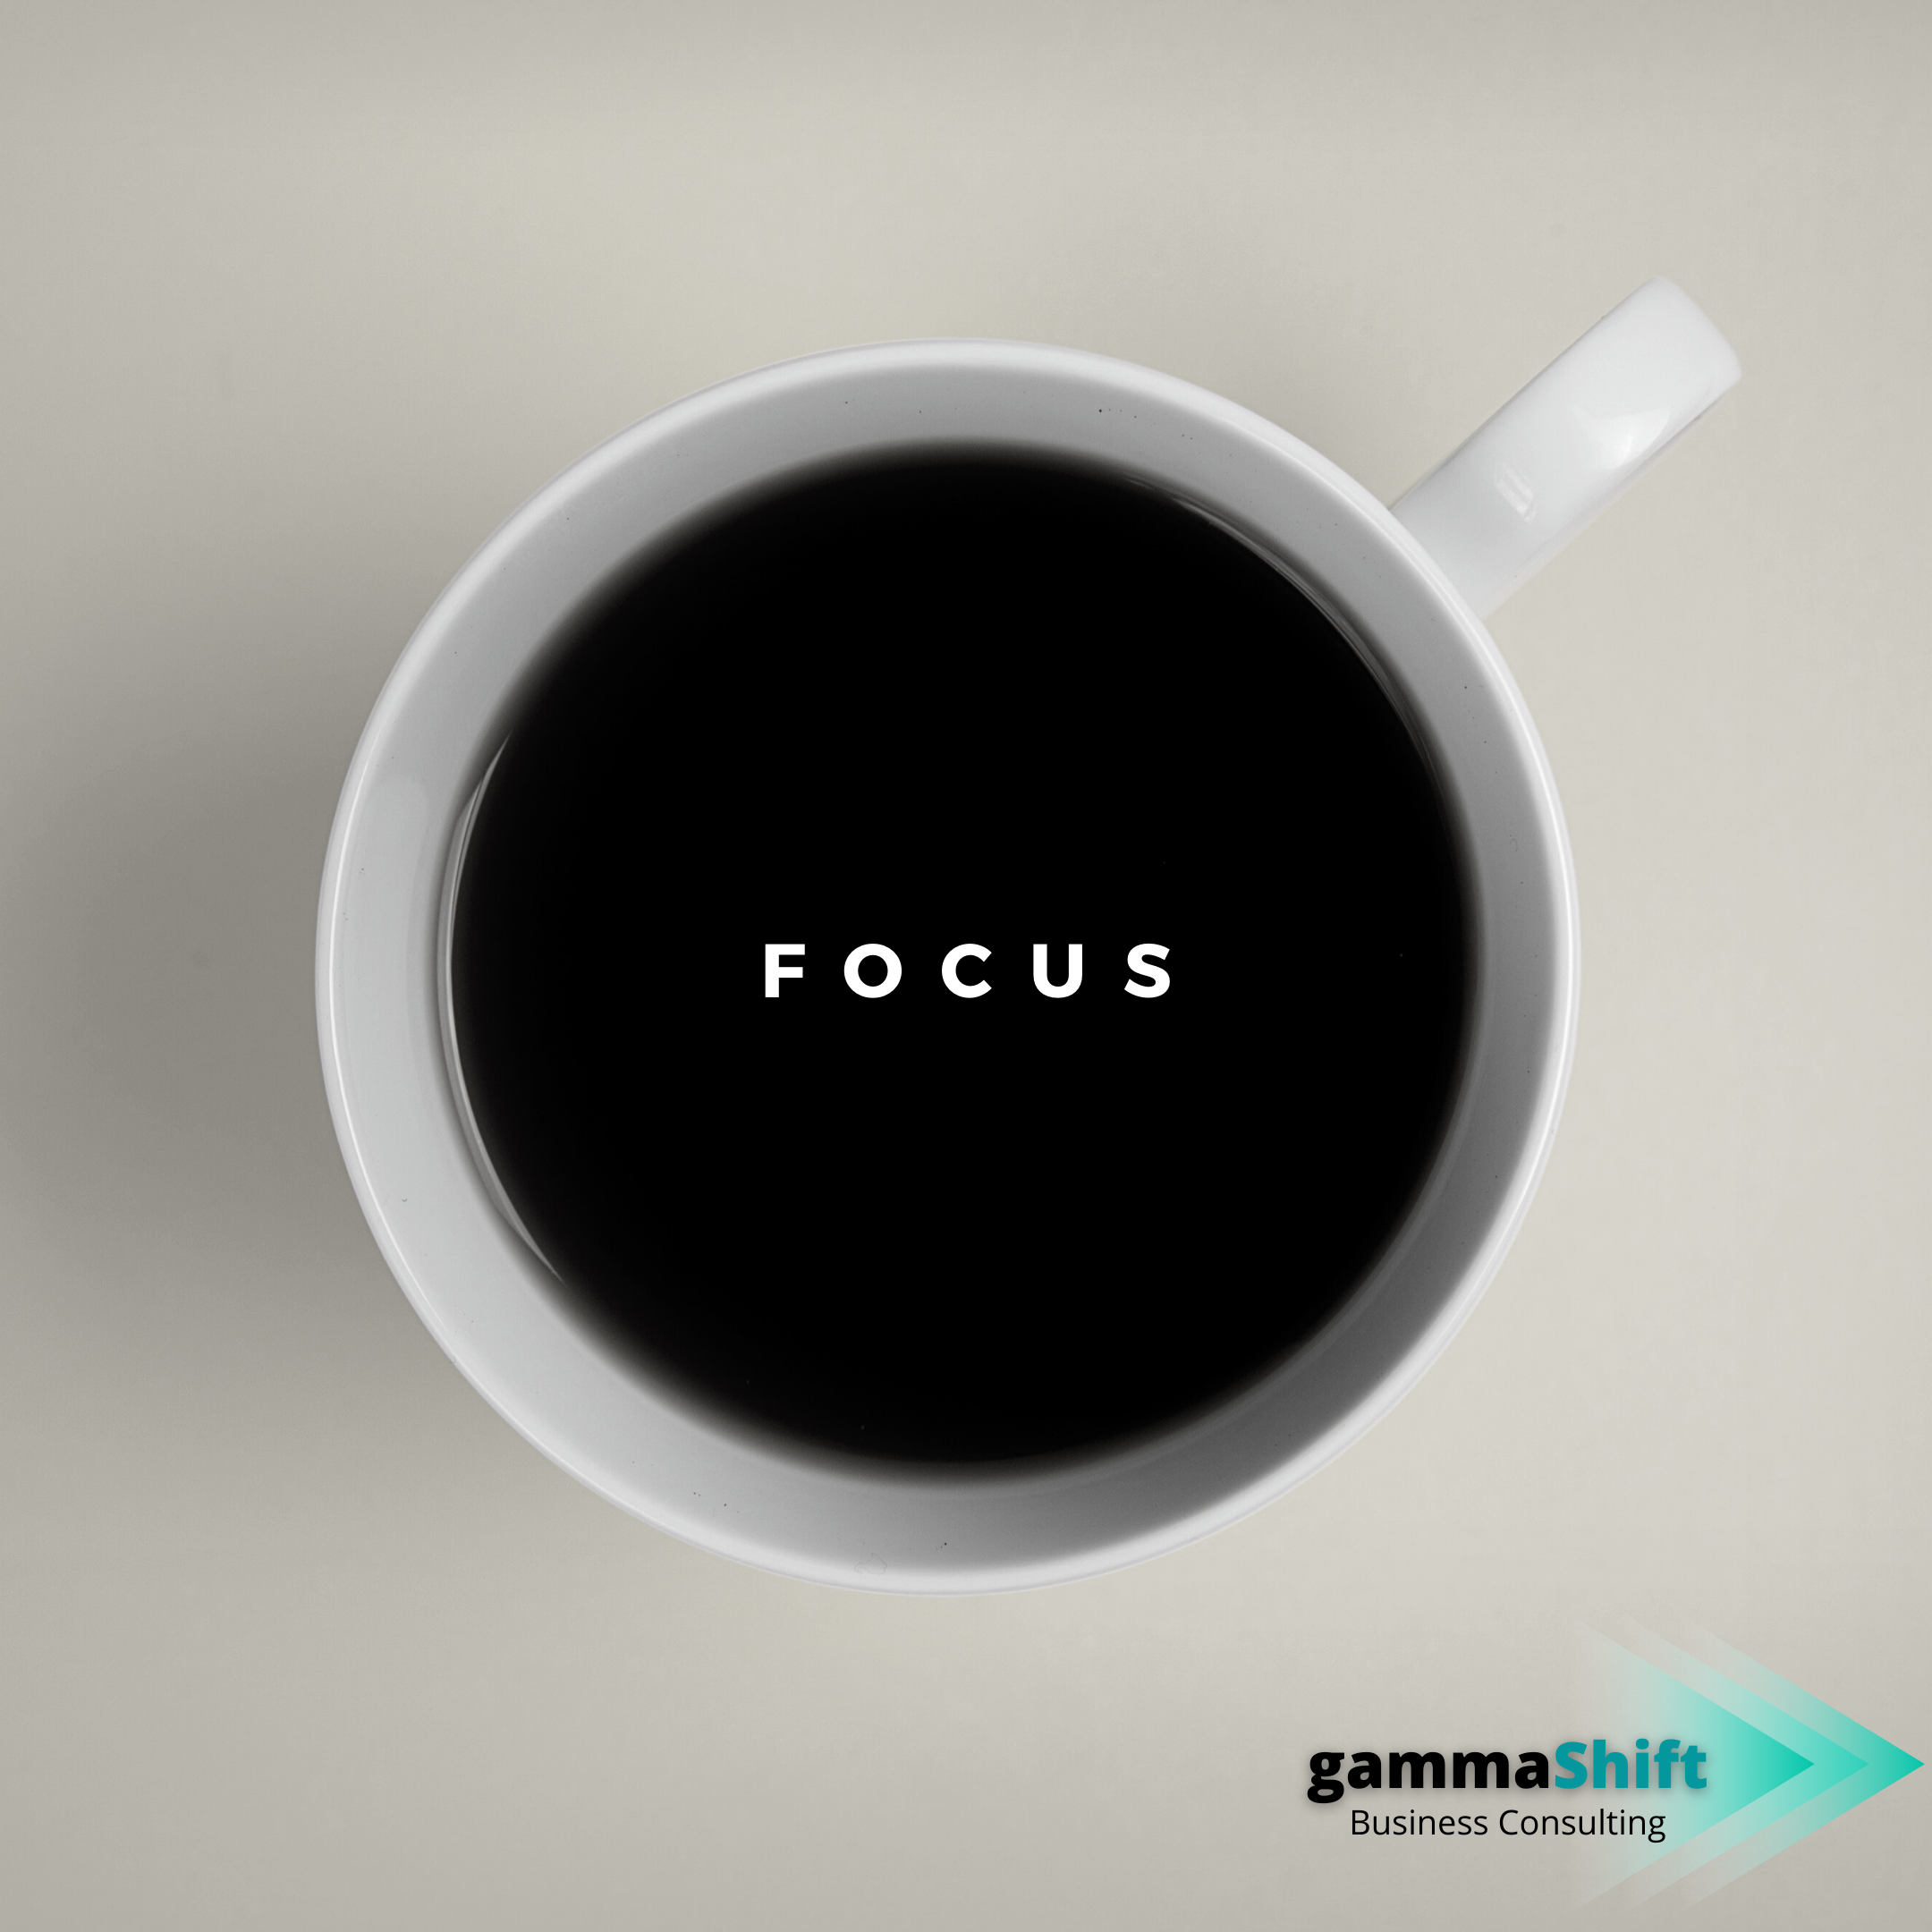 Gamma Shift Business Consulting